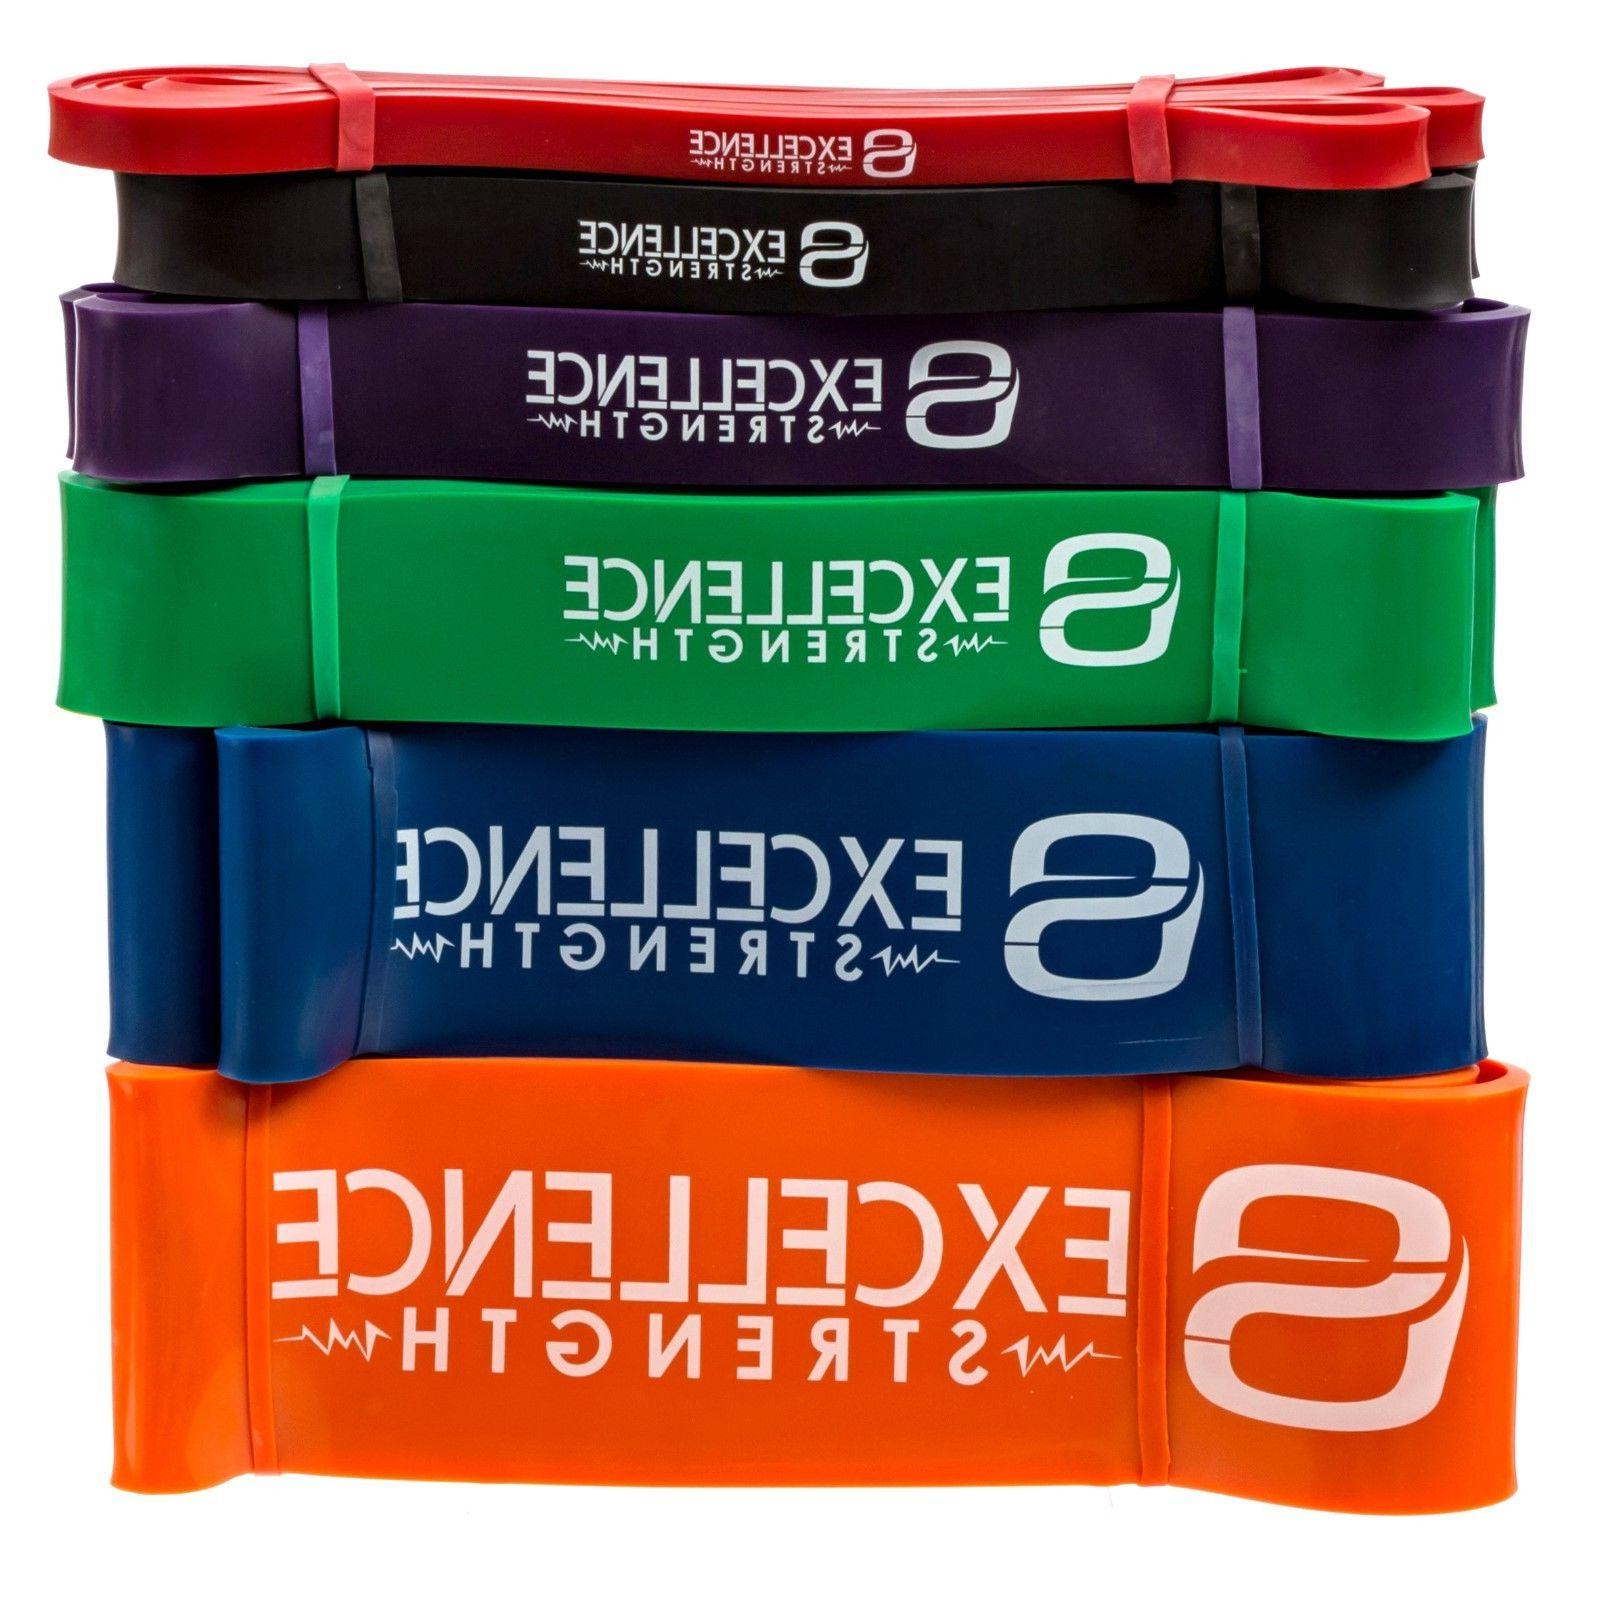 resistance band hi performance pull up assist